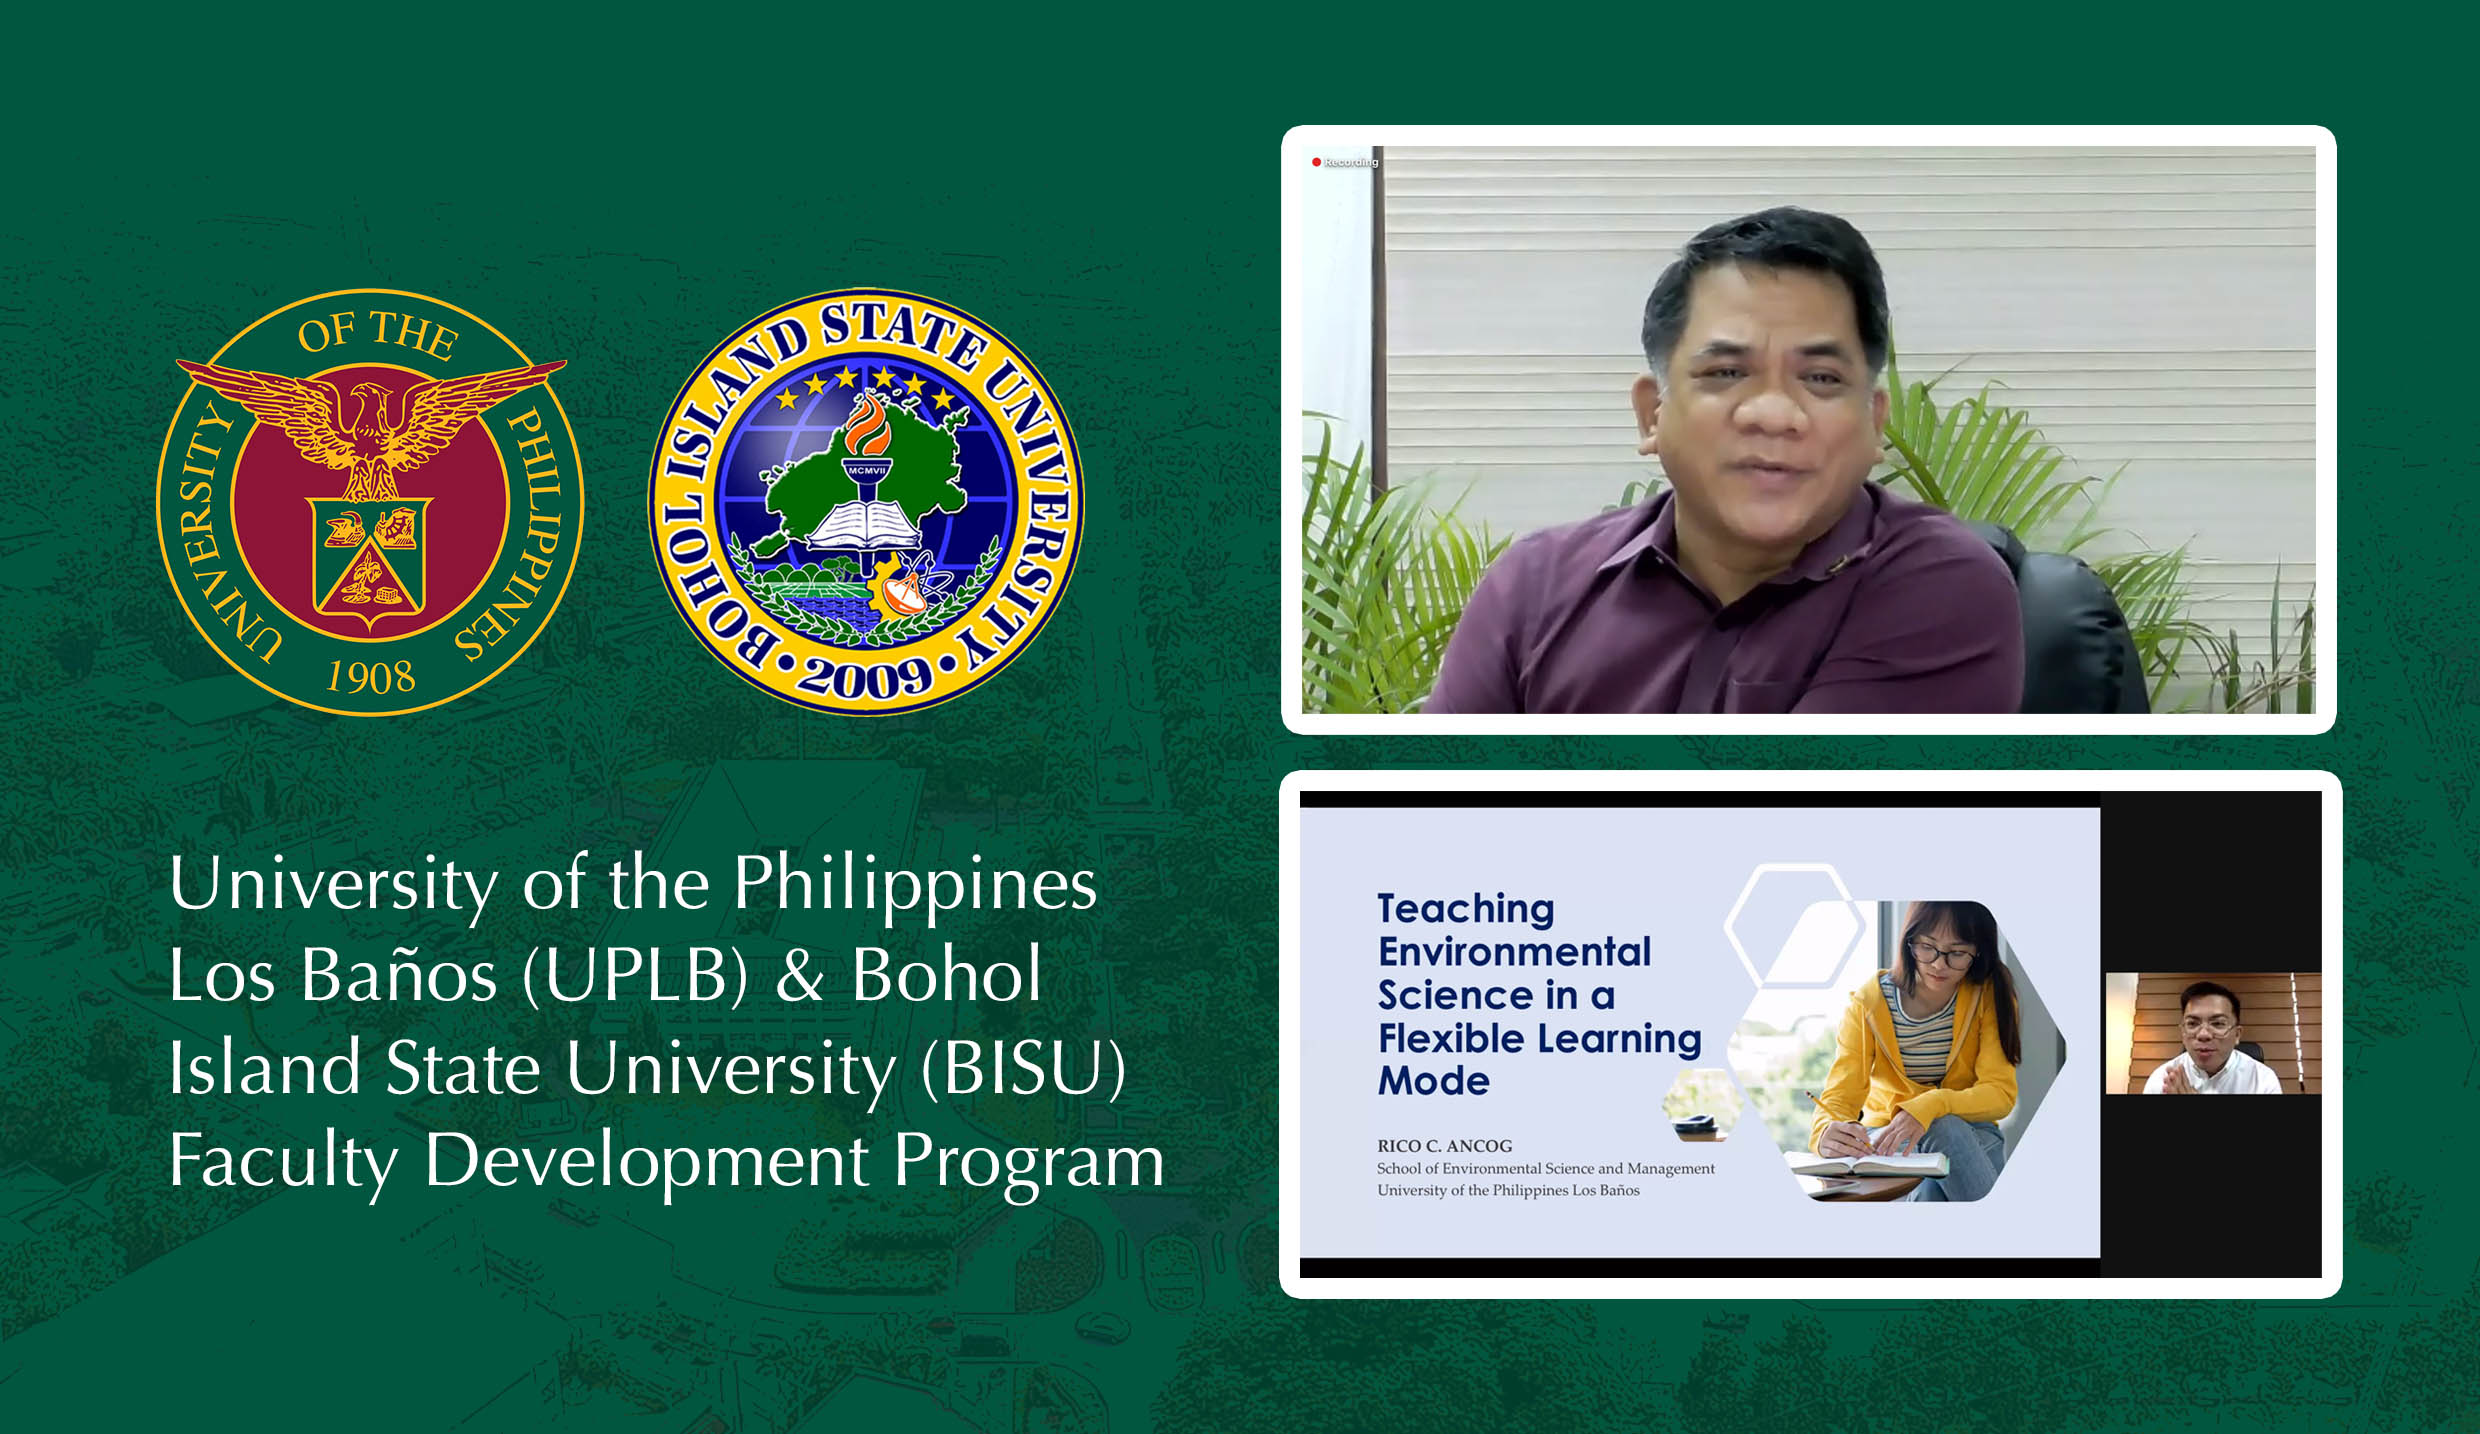 UPLB shares with Bohol Island State University its knowledge on flexible learning